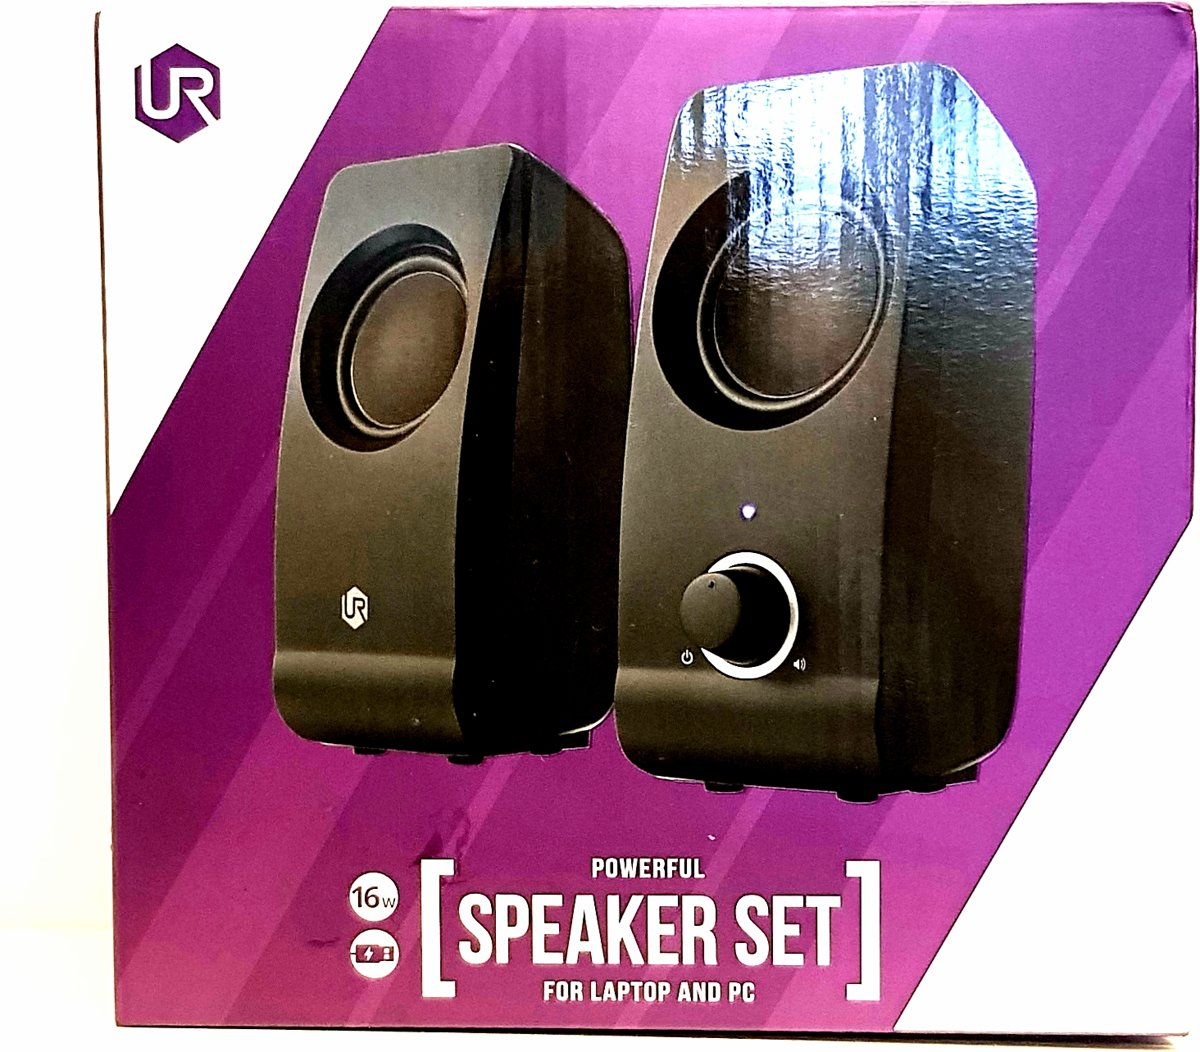 Urban powerful Speakerset For Laptop and PC. Black.